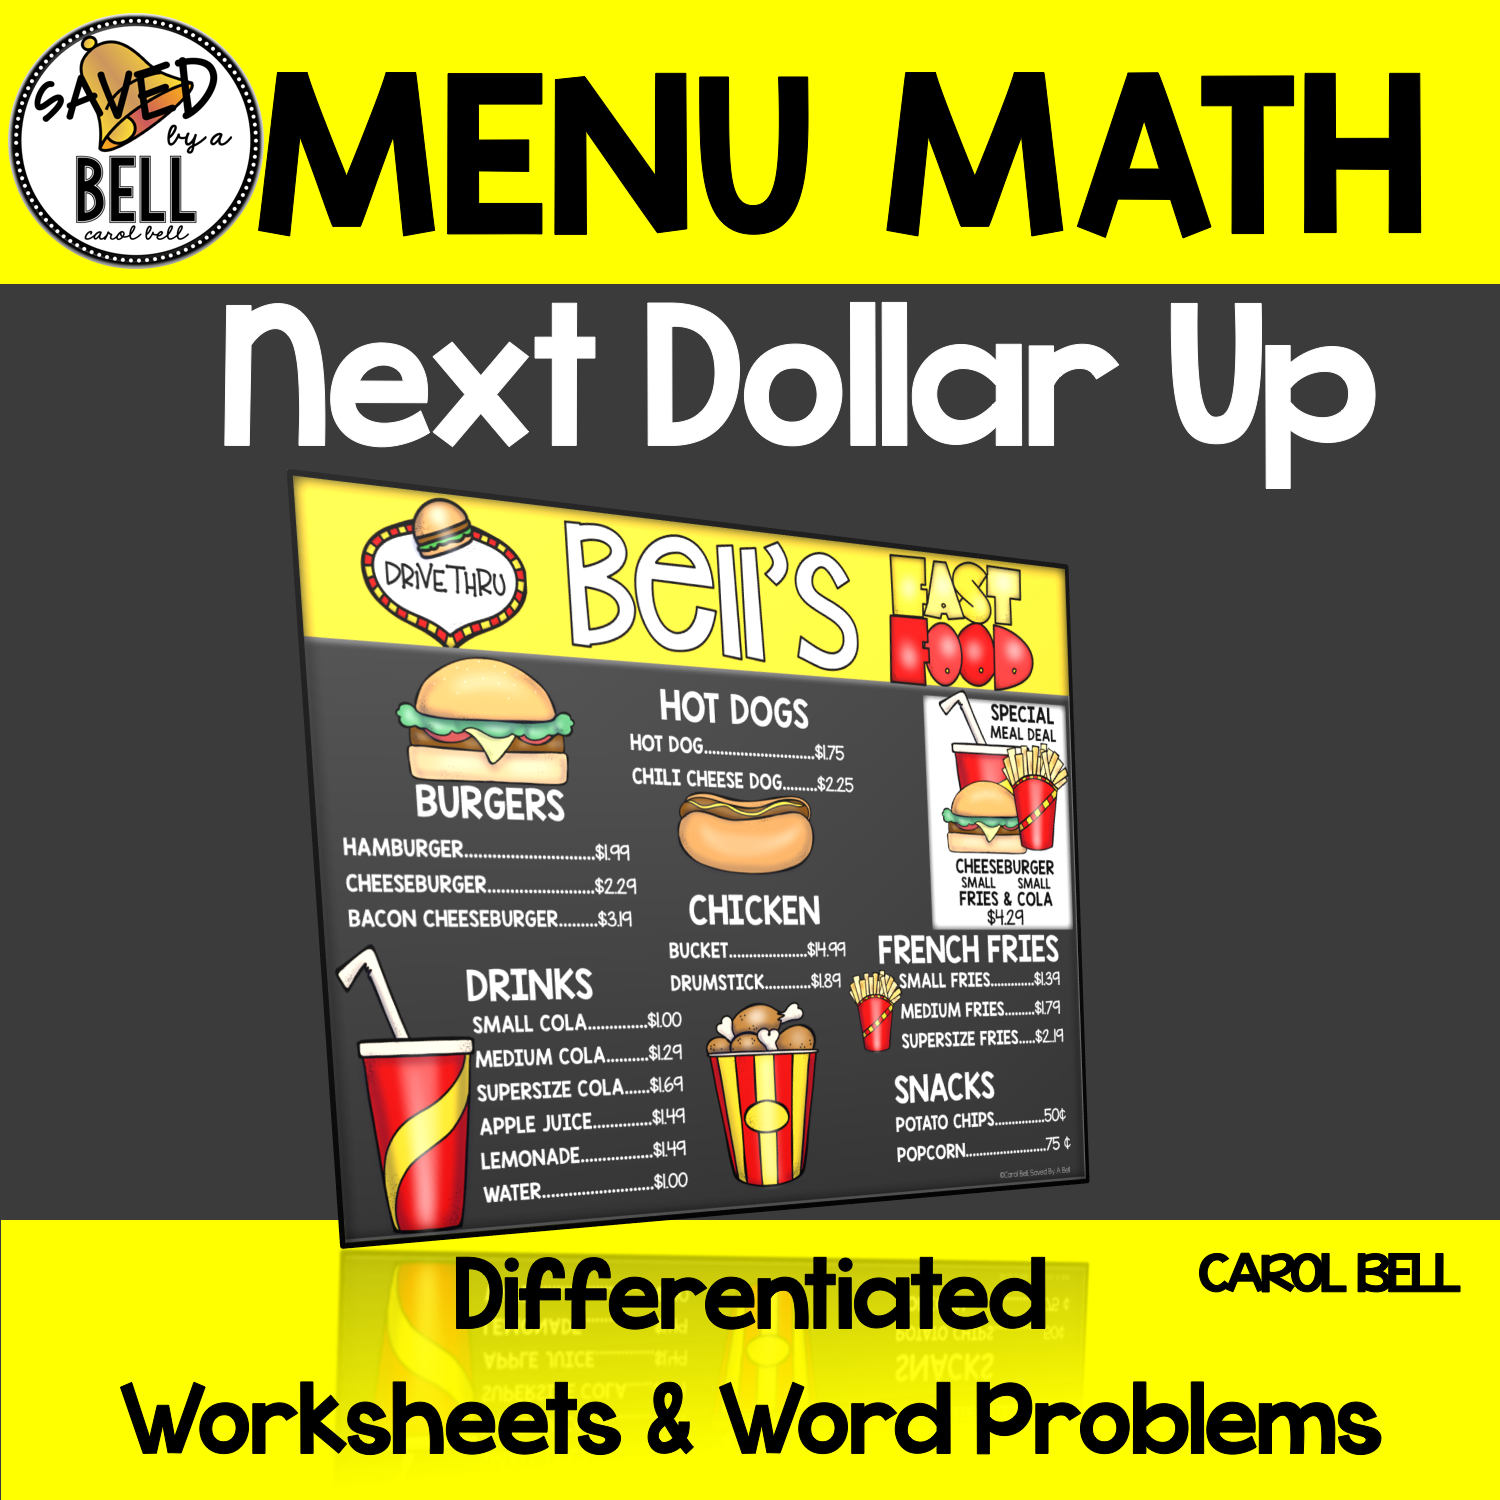 Next Dollar Up Worksheets Menu Math From Saved By A Bell